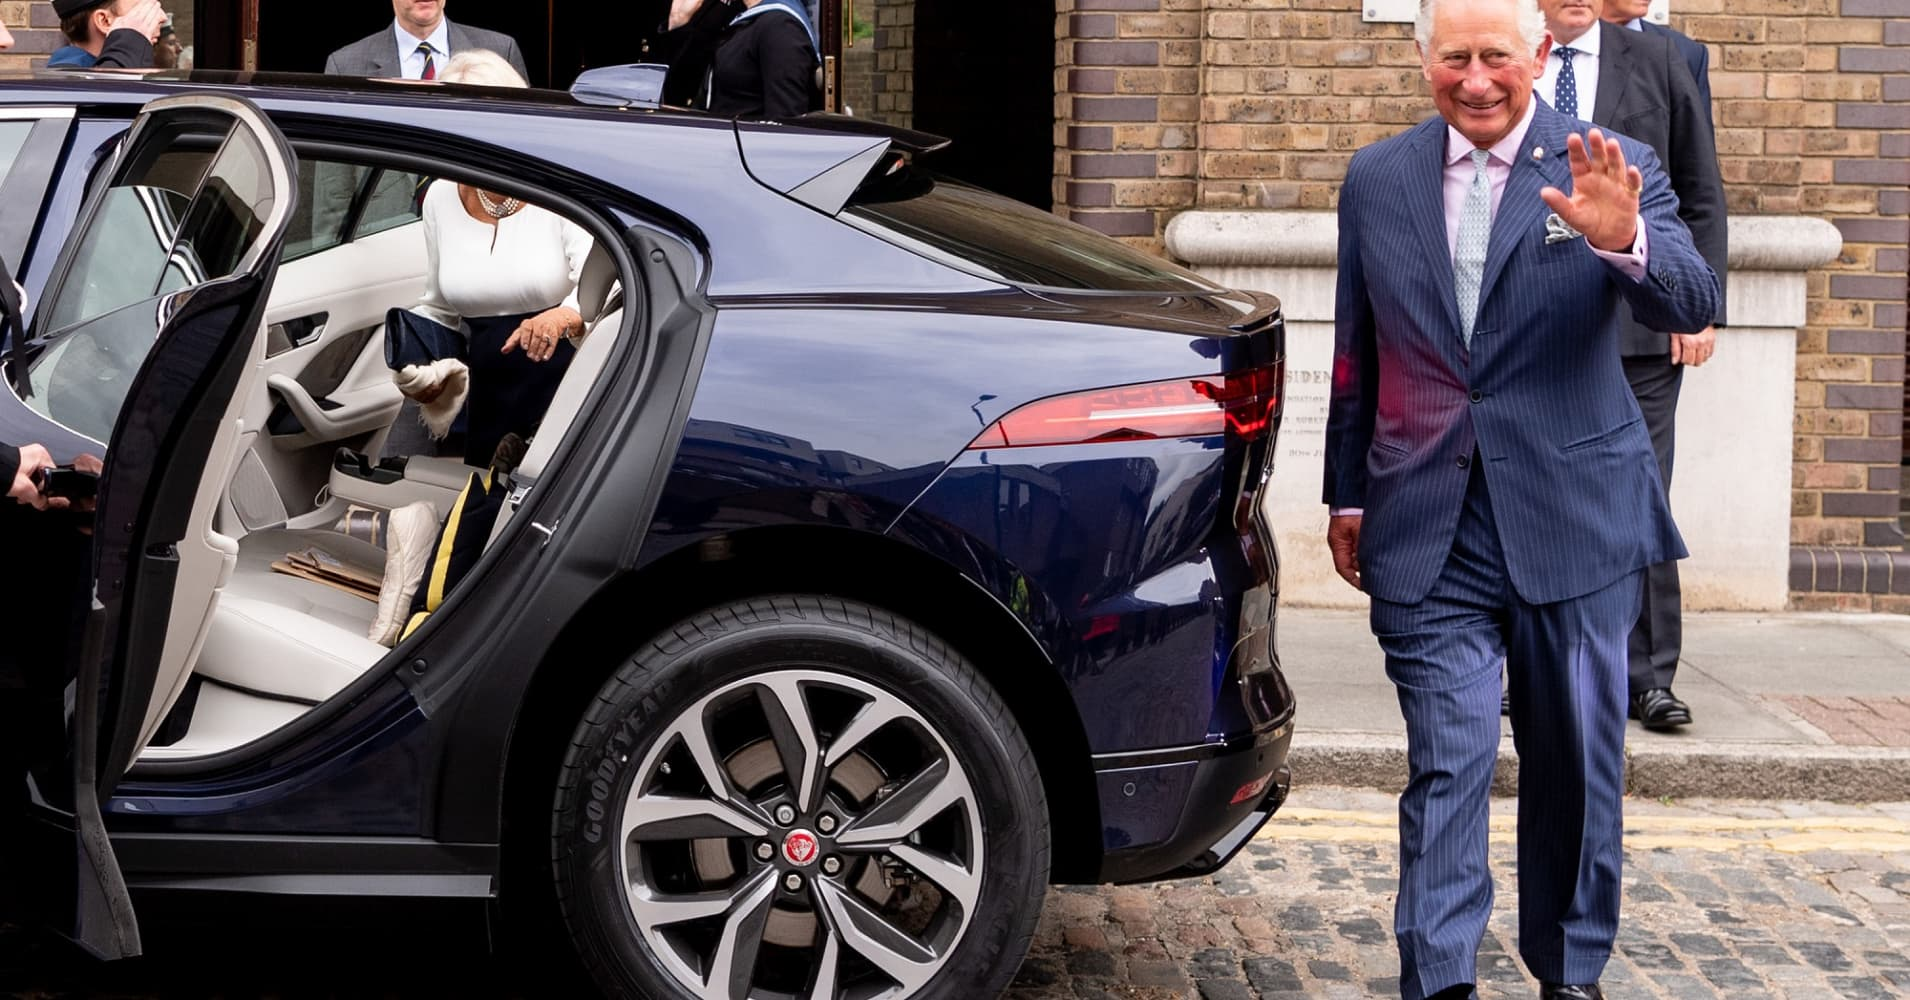 Prince Charles, Prince of Wales gets into the Royal Family's first all-electric car, the Jaguar I-Pace after a visit to the 'Maiden' yacht on September 5, 2018 in London, England.